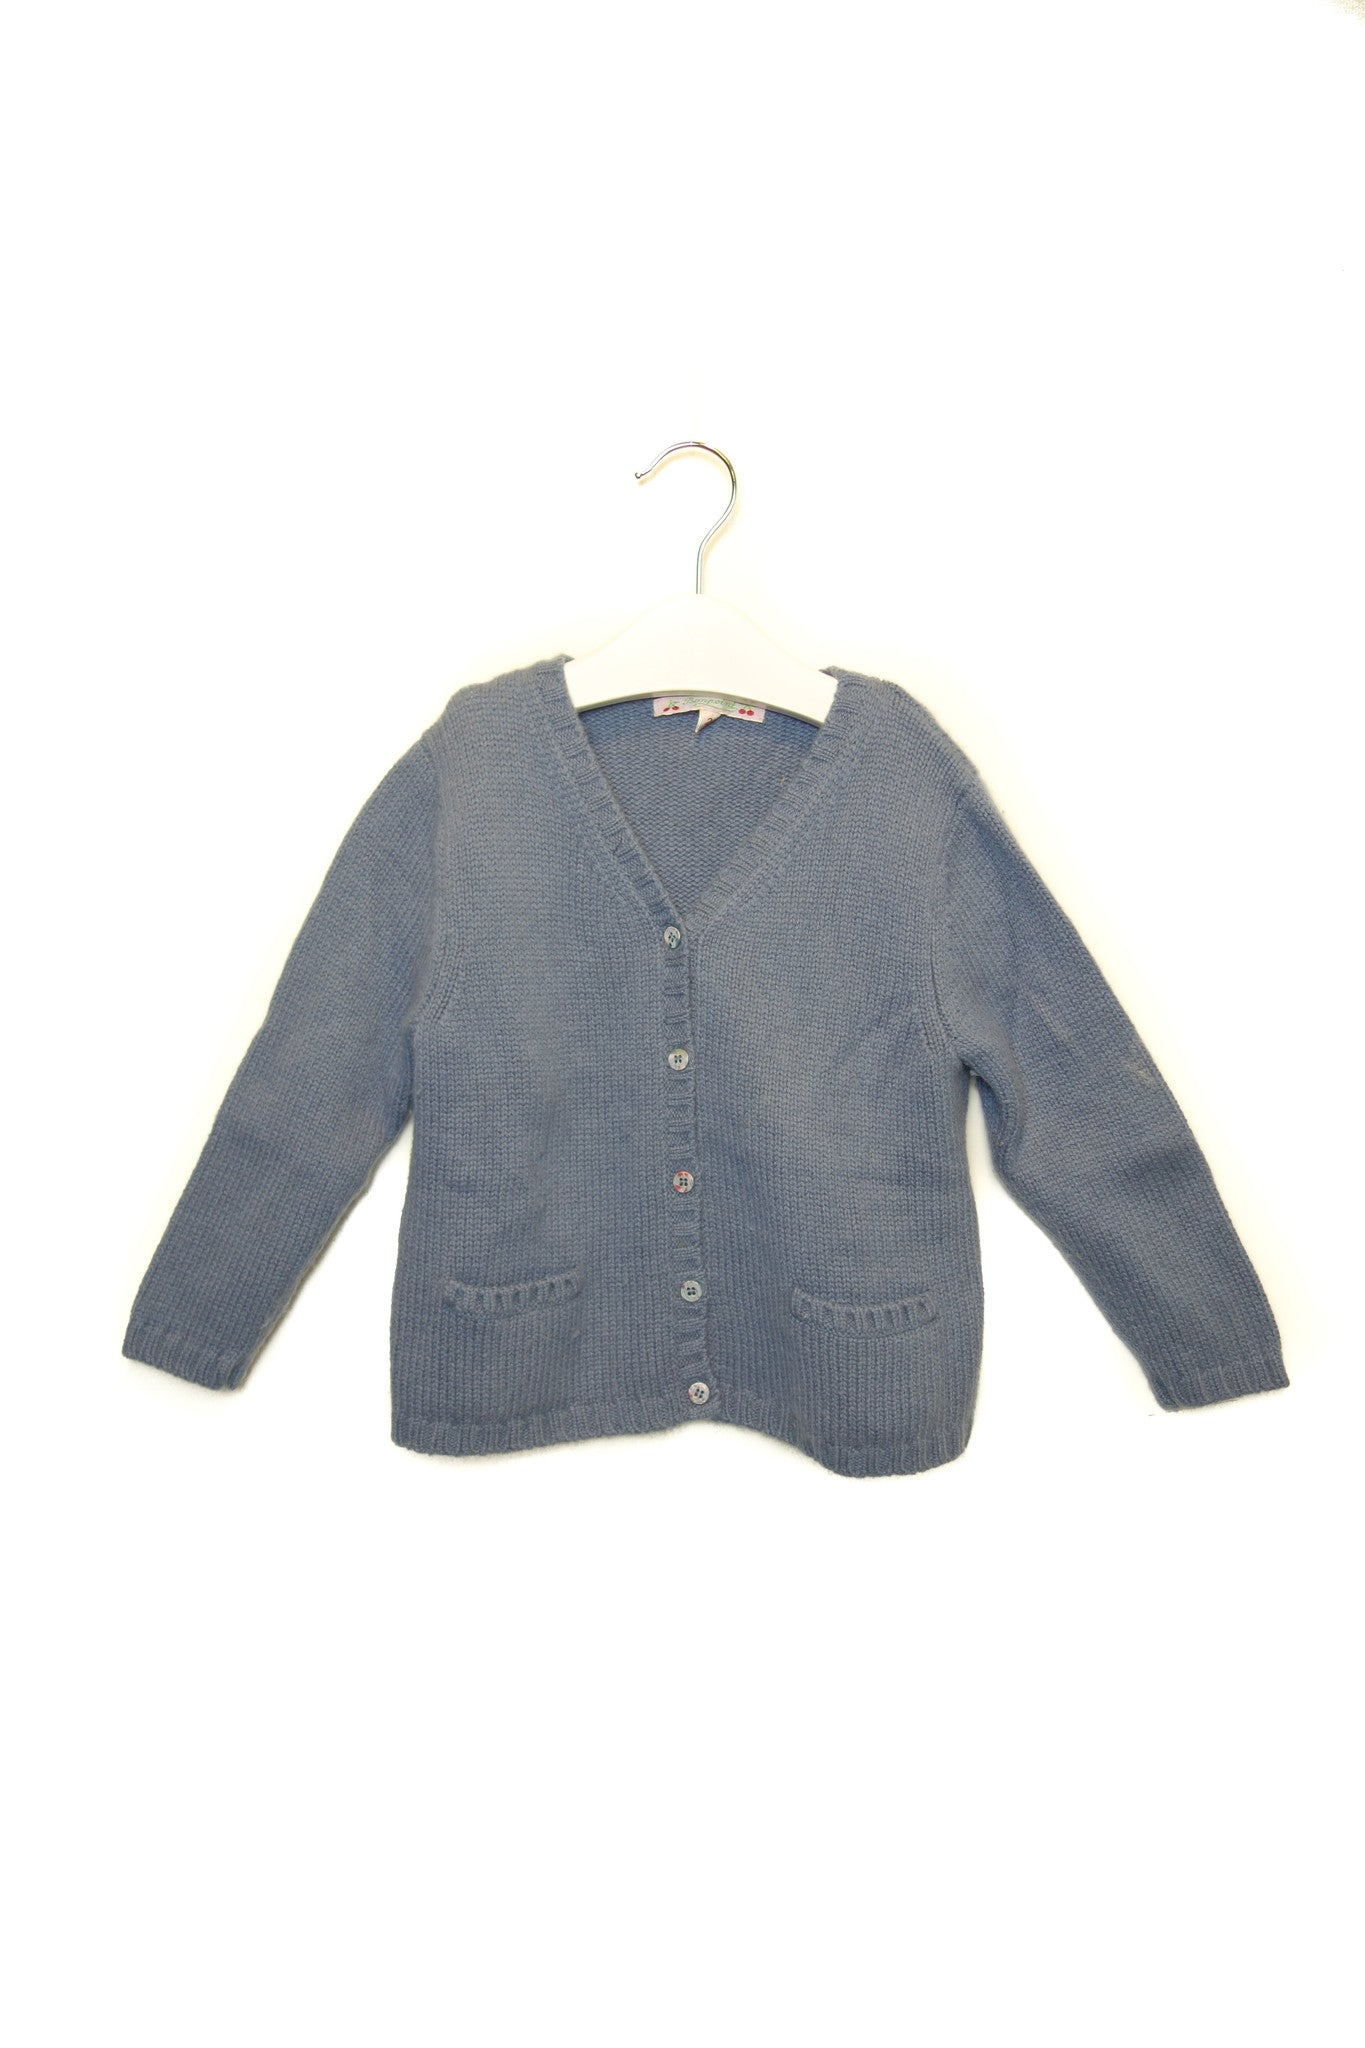 10001753 Bonpoint Kids~Cardigan 2T at Retykle